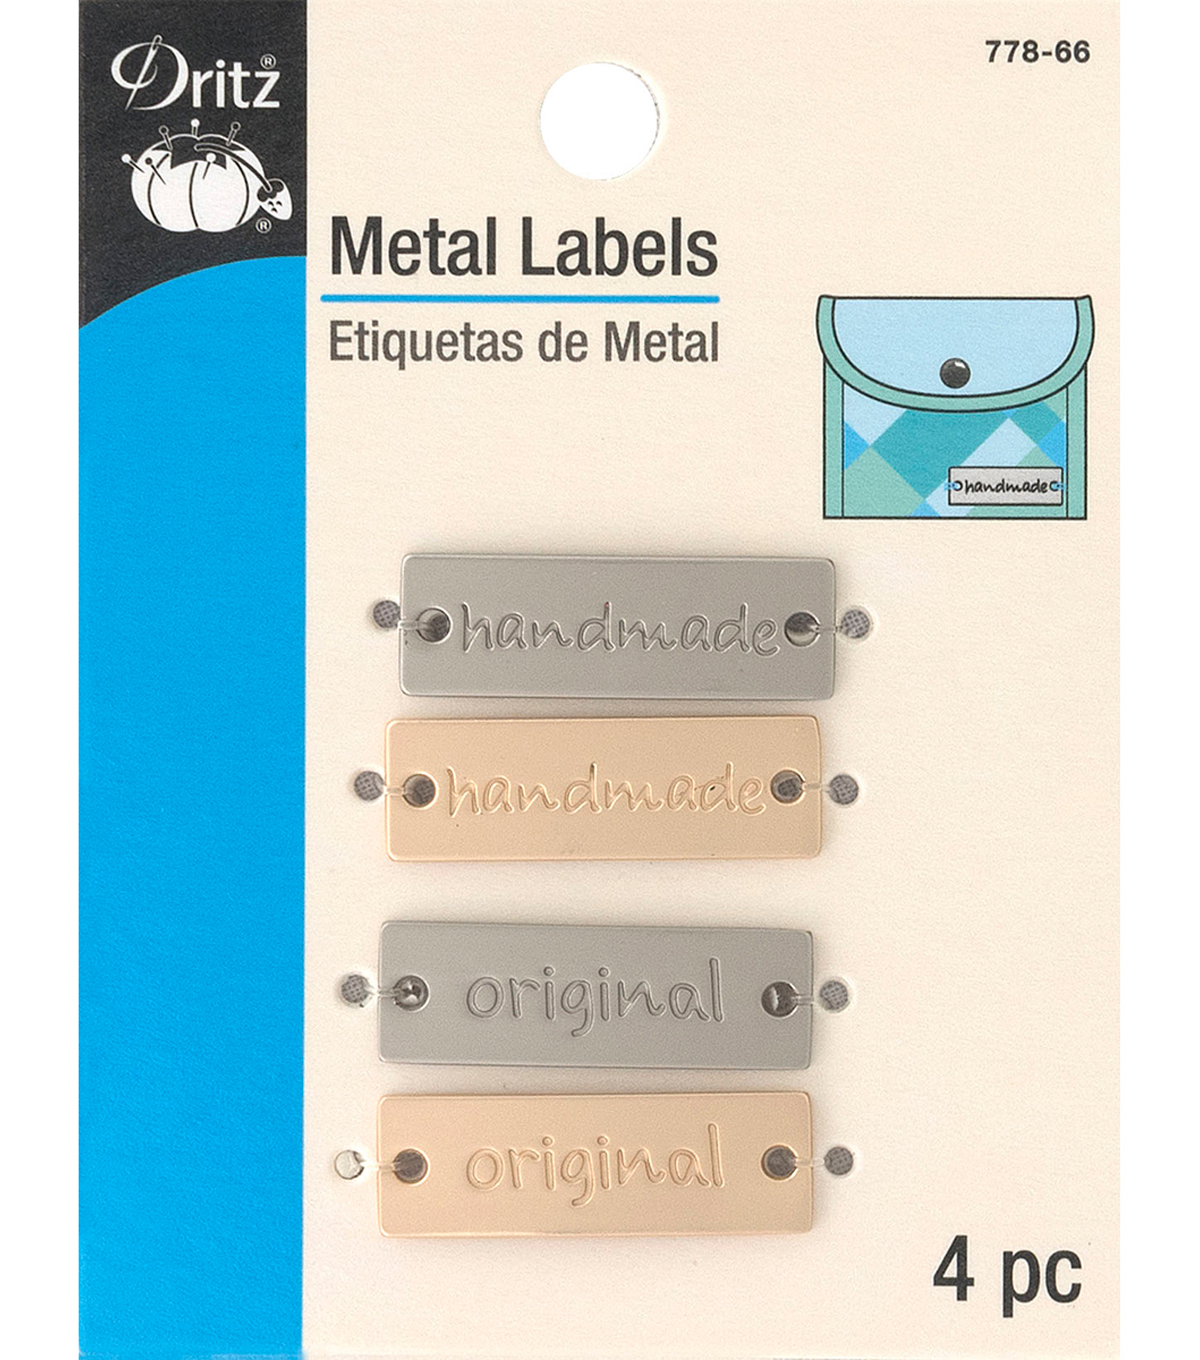 Dritz Metal Labels-Gold & Nickel-Handmade & Original